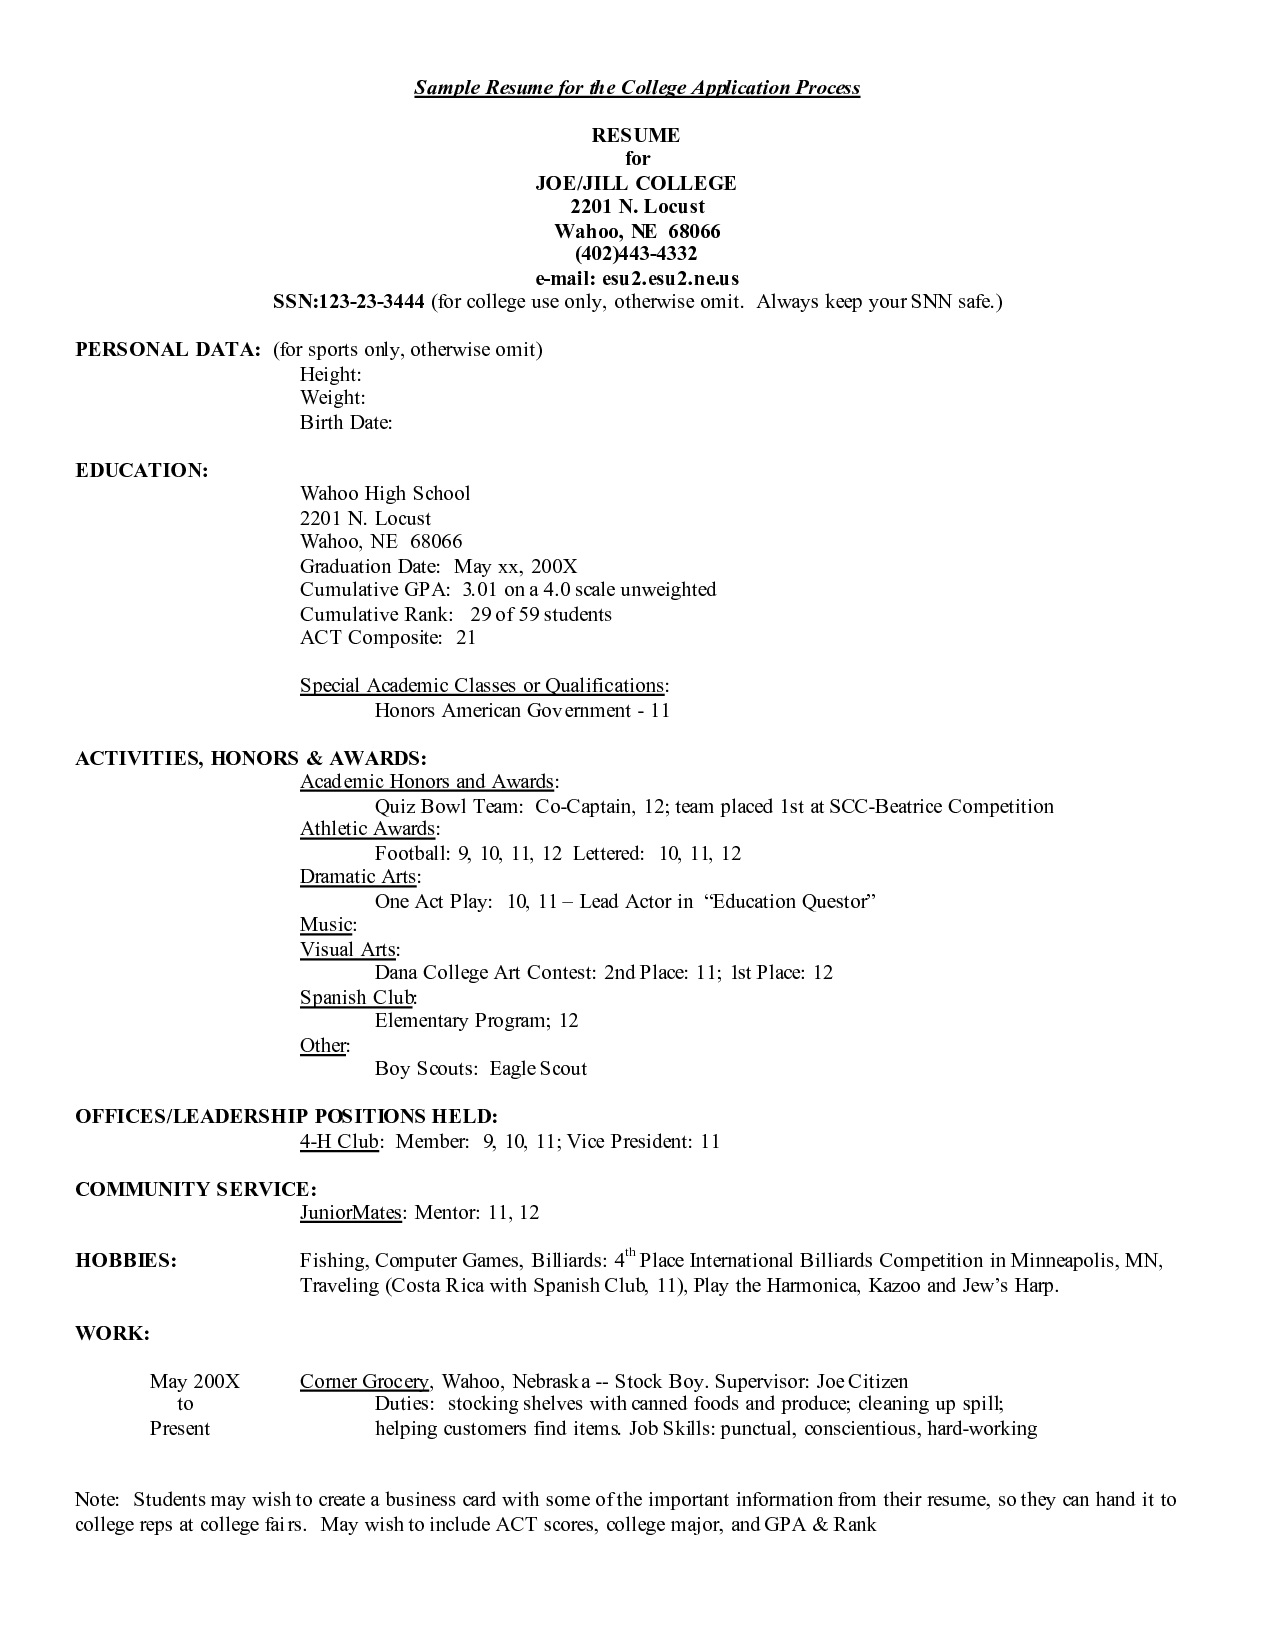 Resume Samples For College Applications Sample The